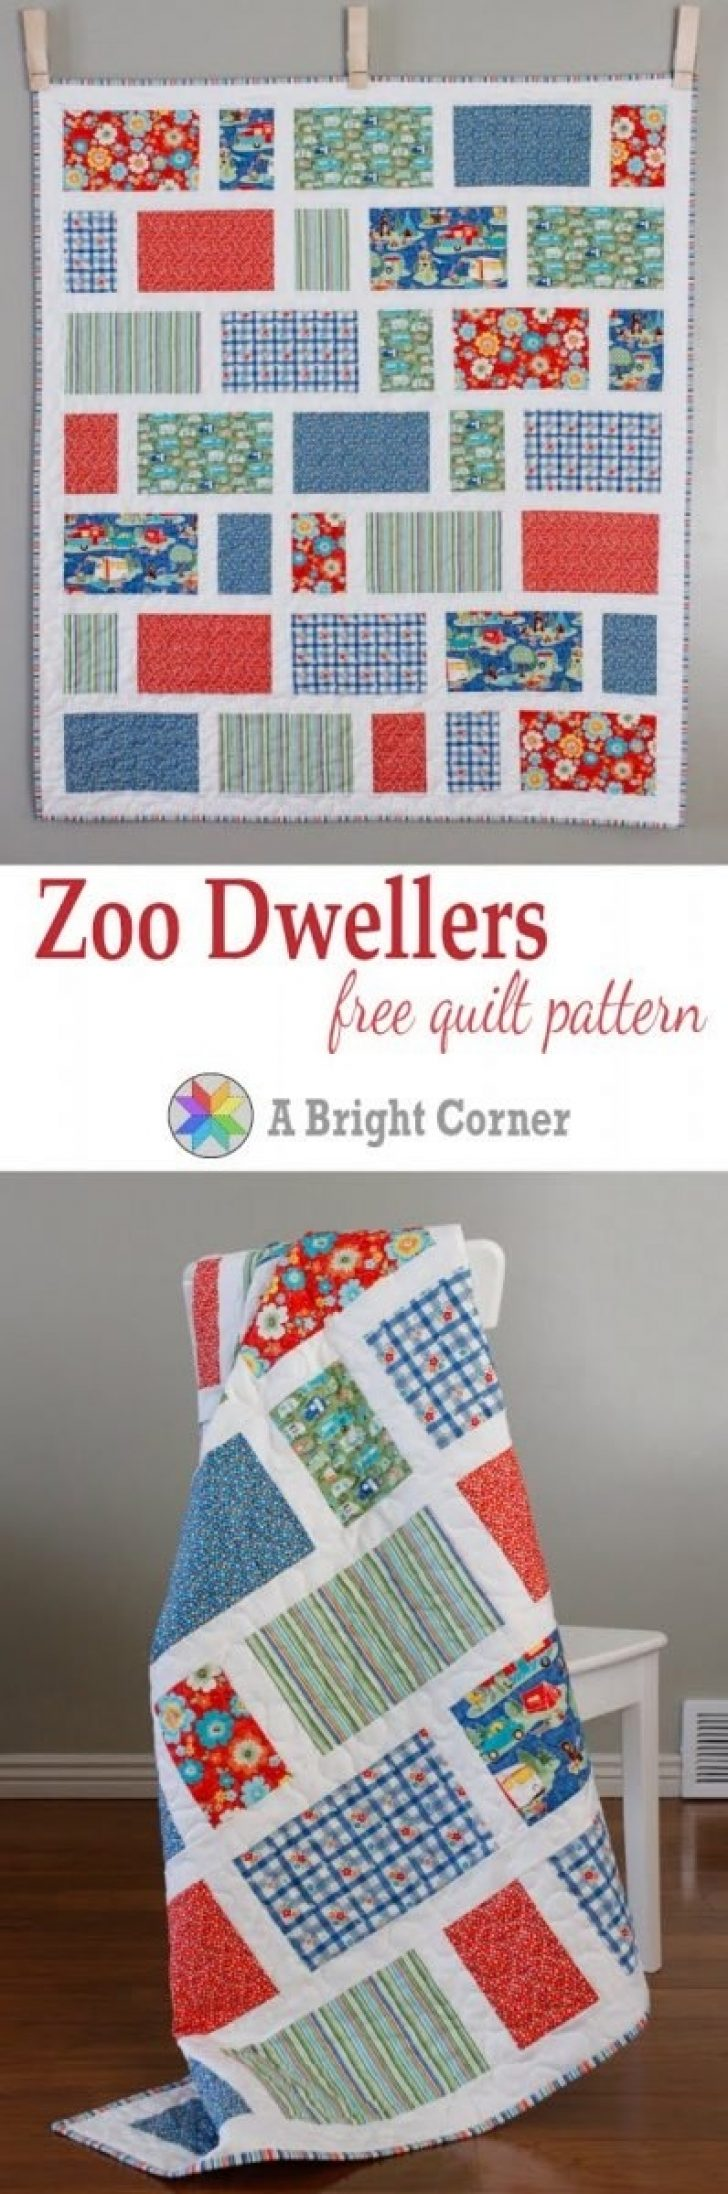 Permalink to Interesting Quilts For Babies Patterns Inspirations